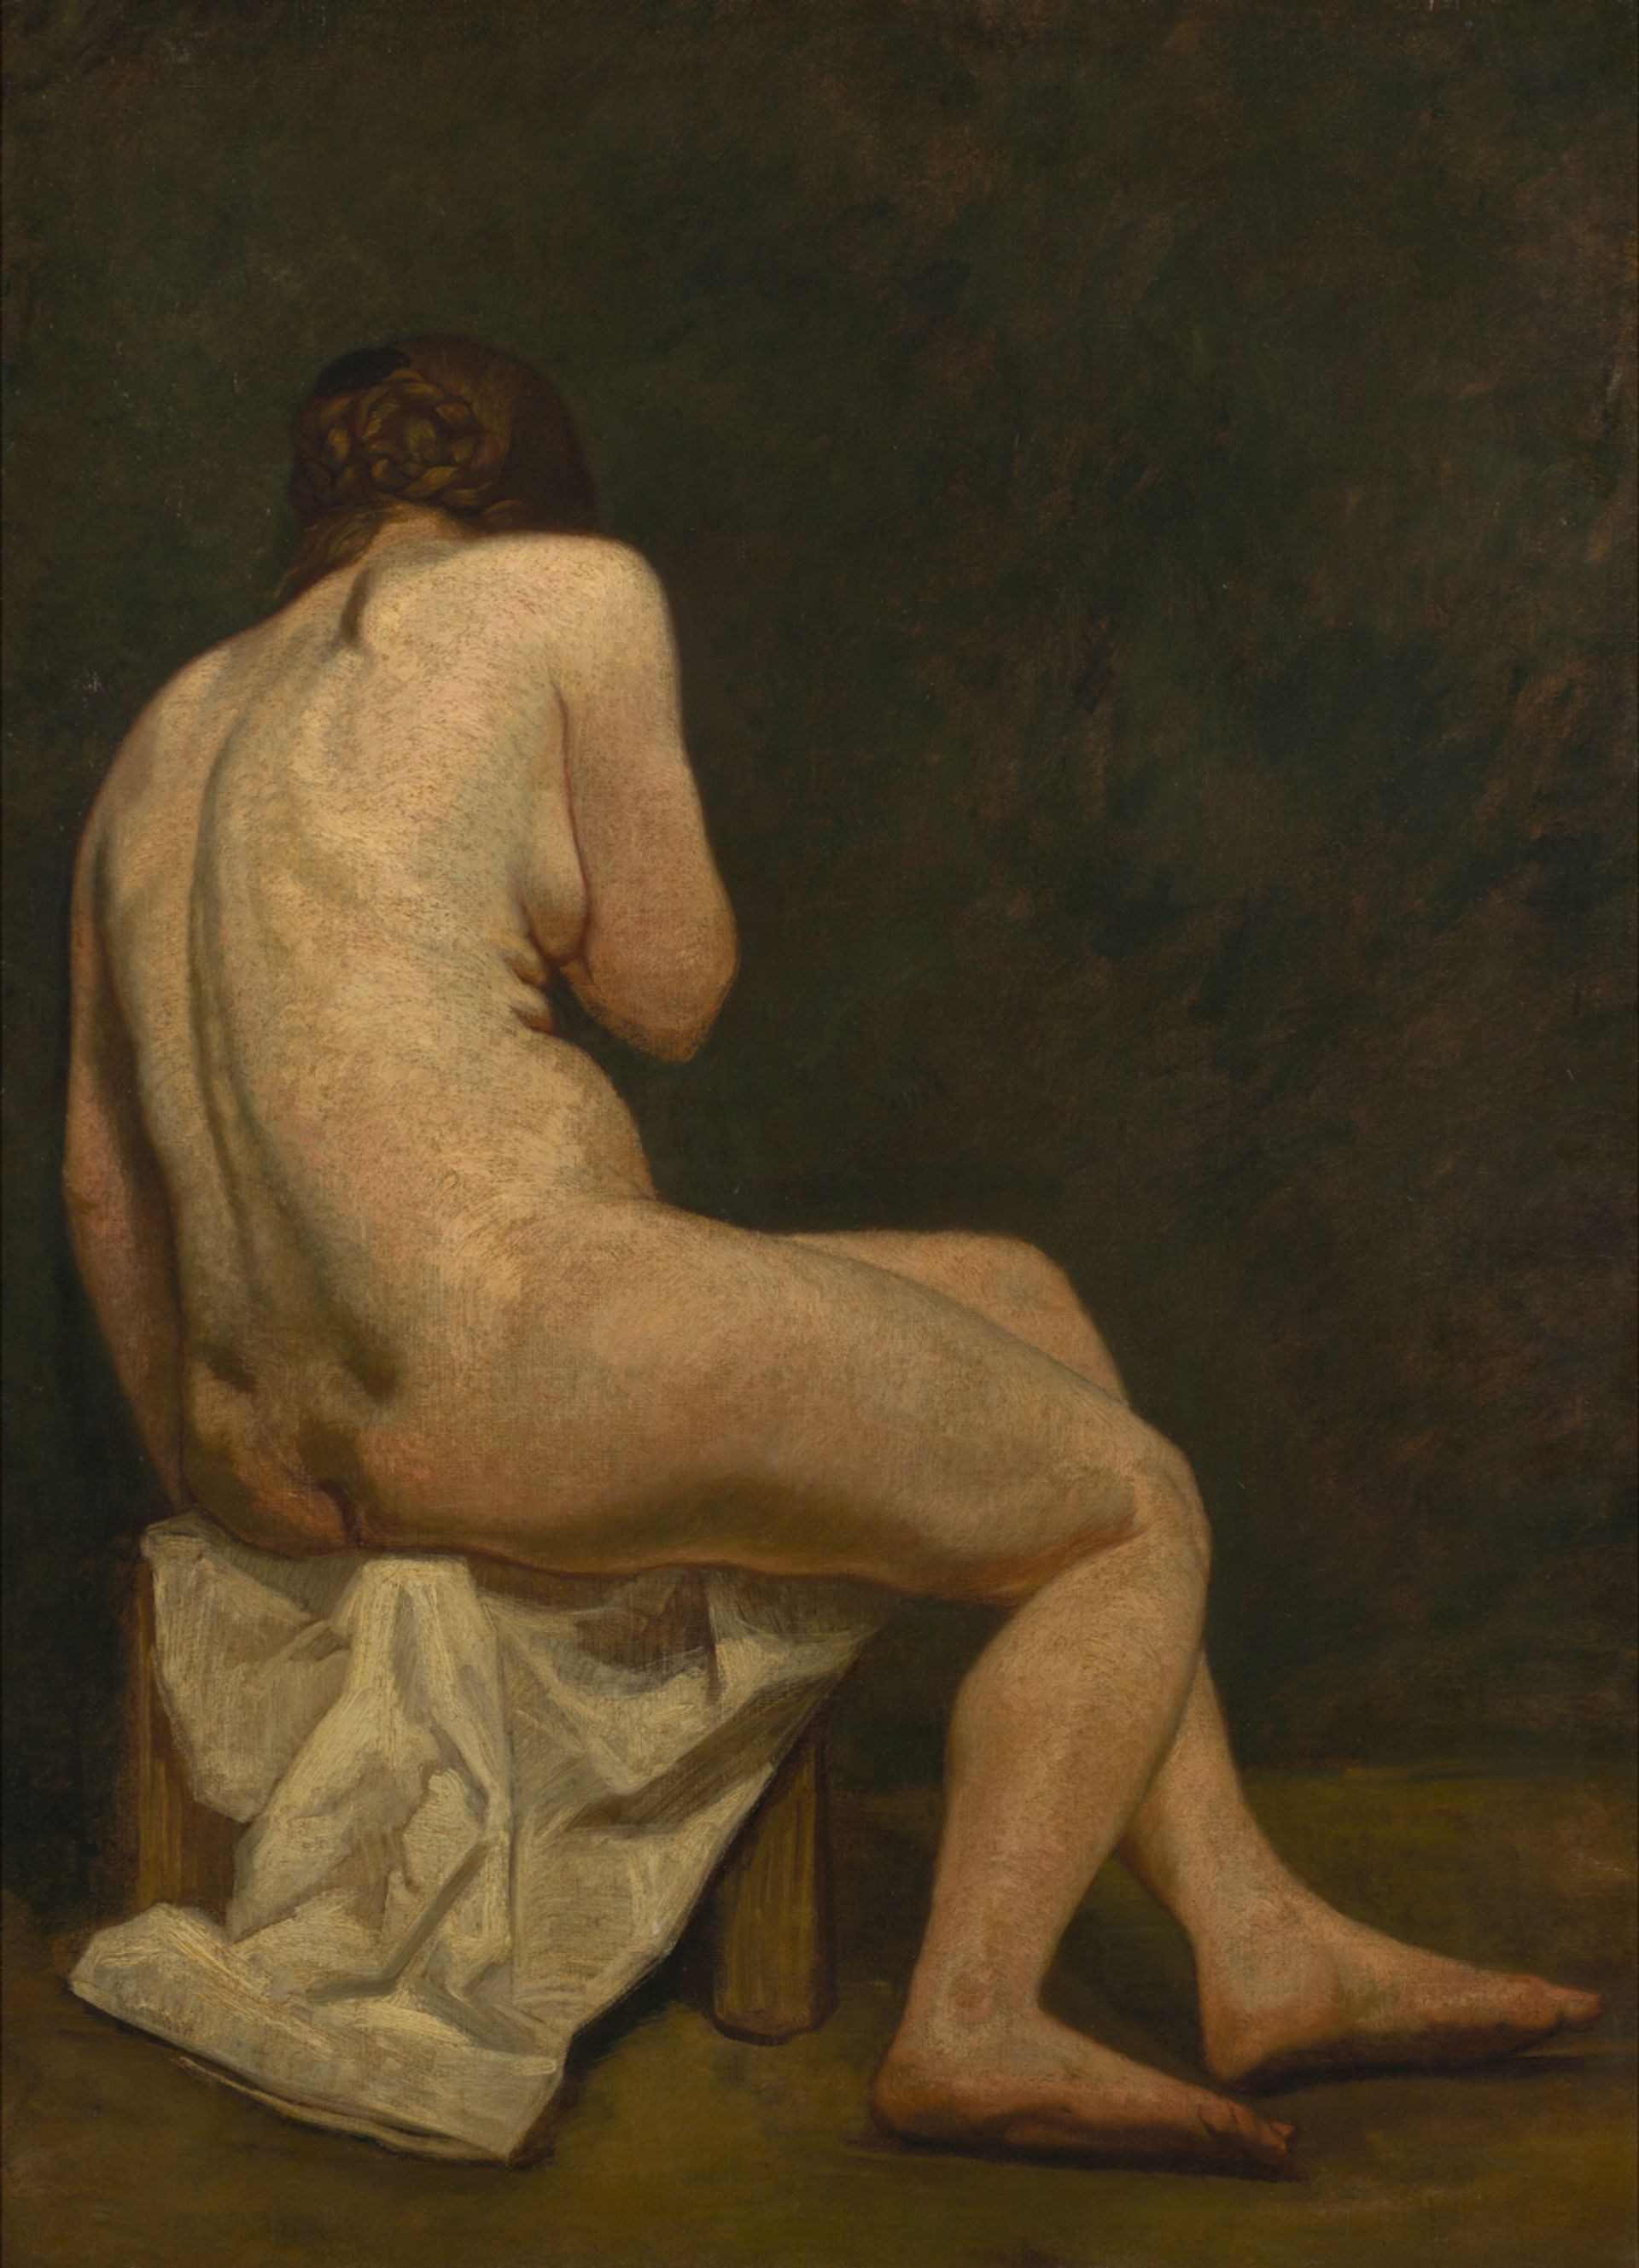 John Russell, Female Nude (about 1886), oil on canvas, 120cm by 92cm, Van Gogh Museum, Amsterdam (Vincent van Gogh Foundation) Courtesy of the Van Gogh Museum, Amsterdam (Vincent van Gogh Foundation)